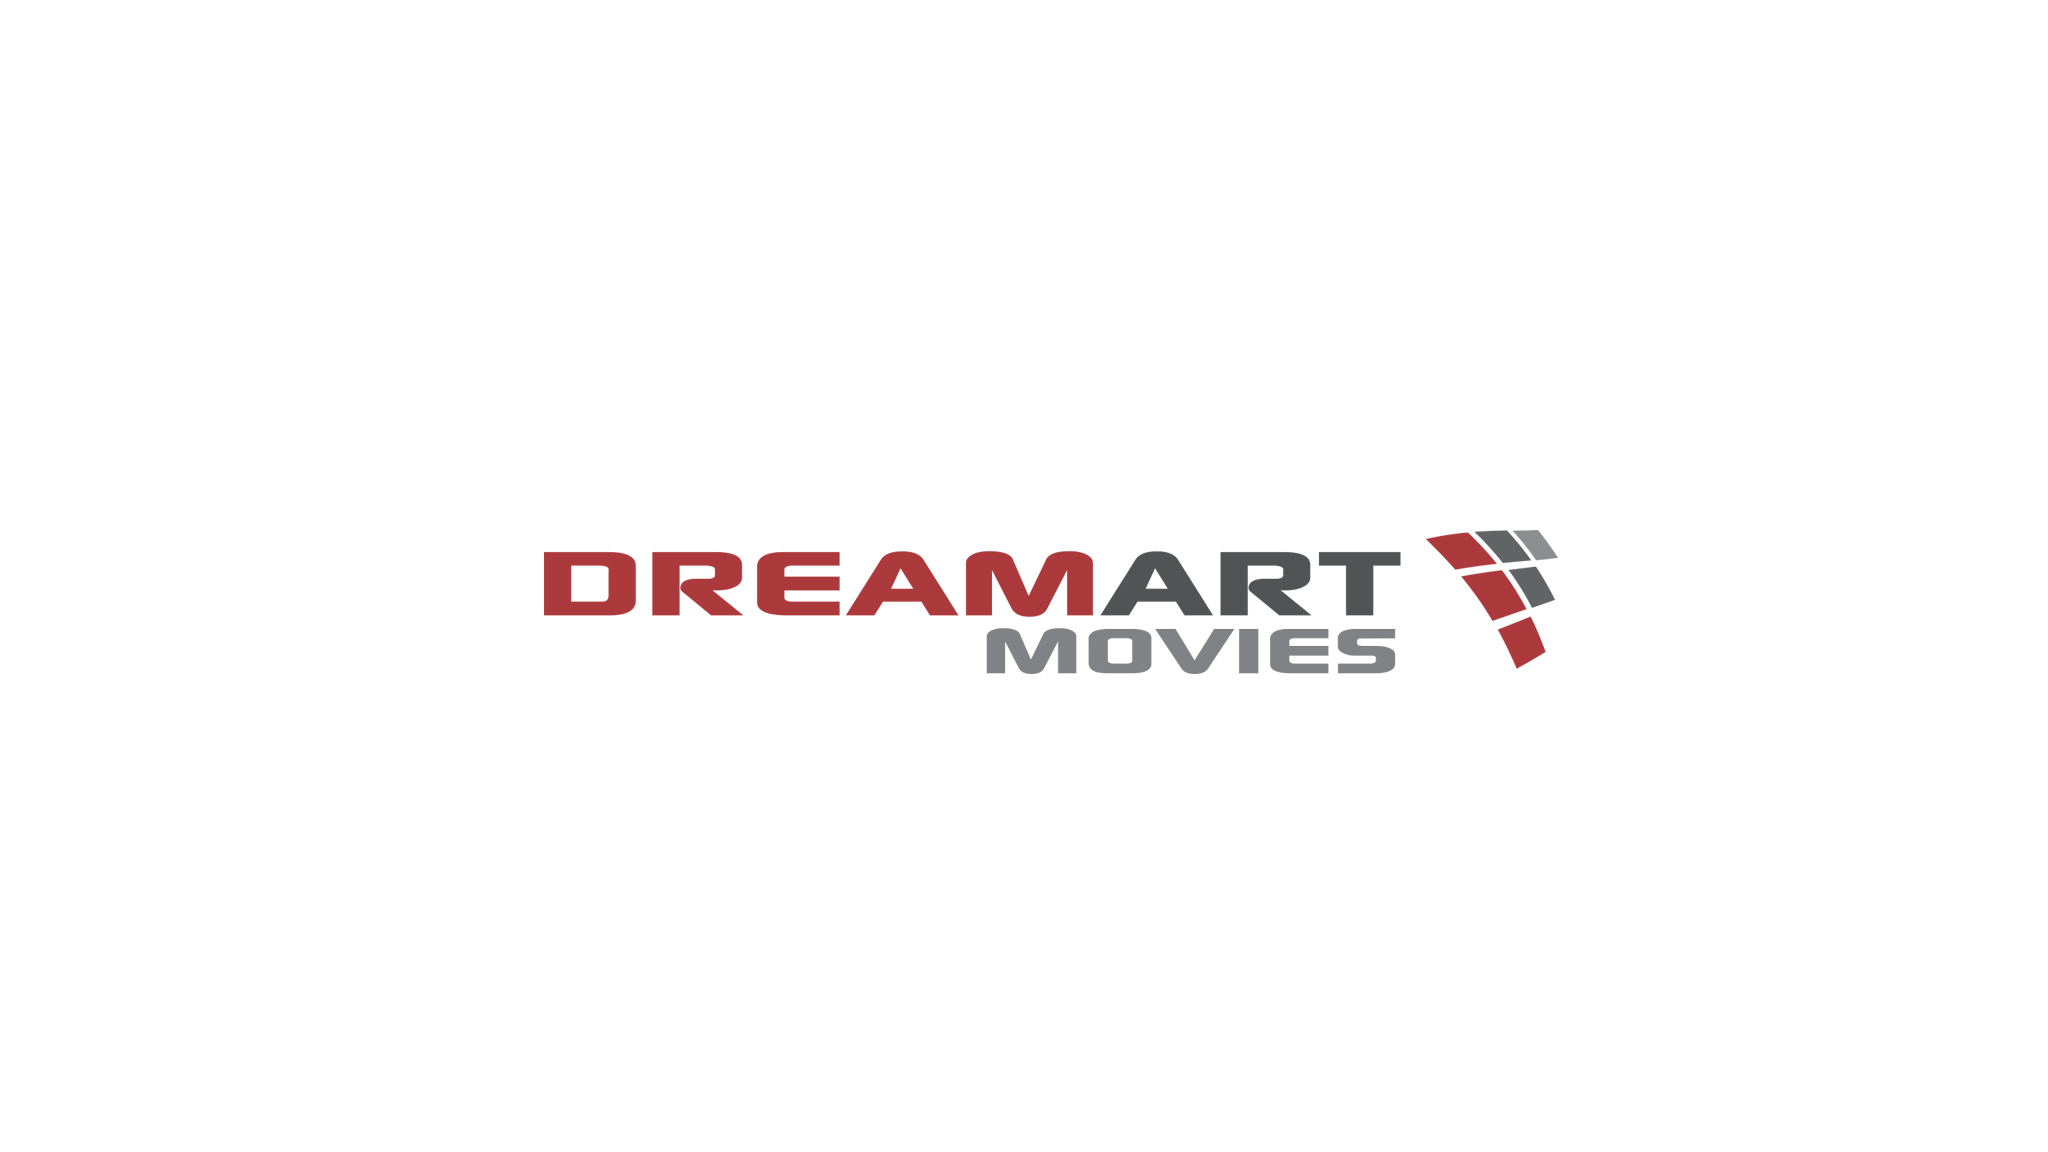 DREAMART MOVIES